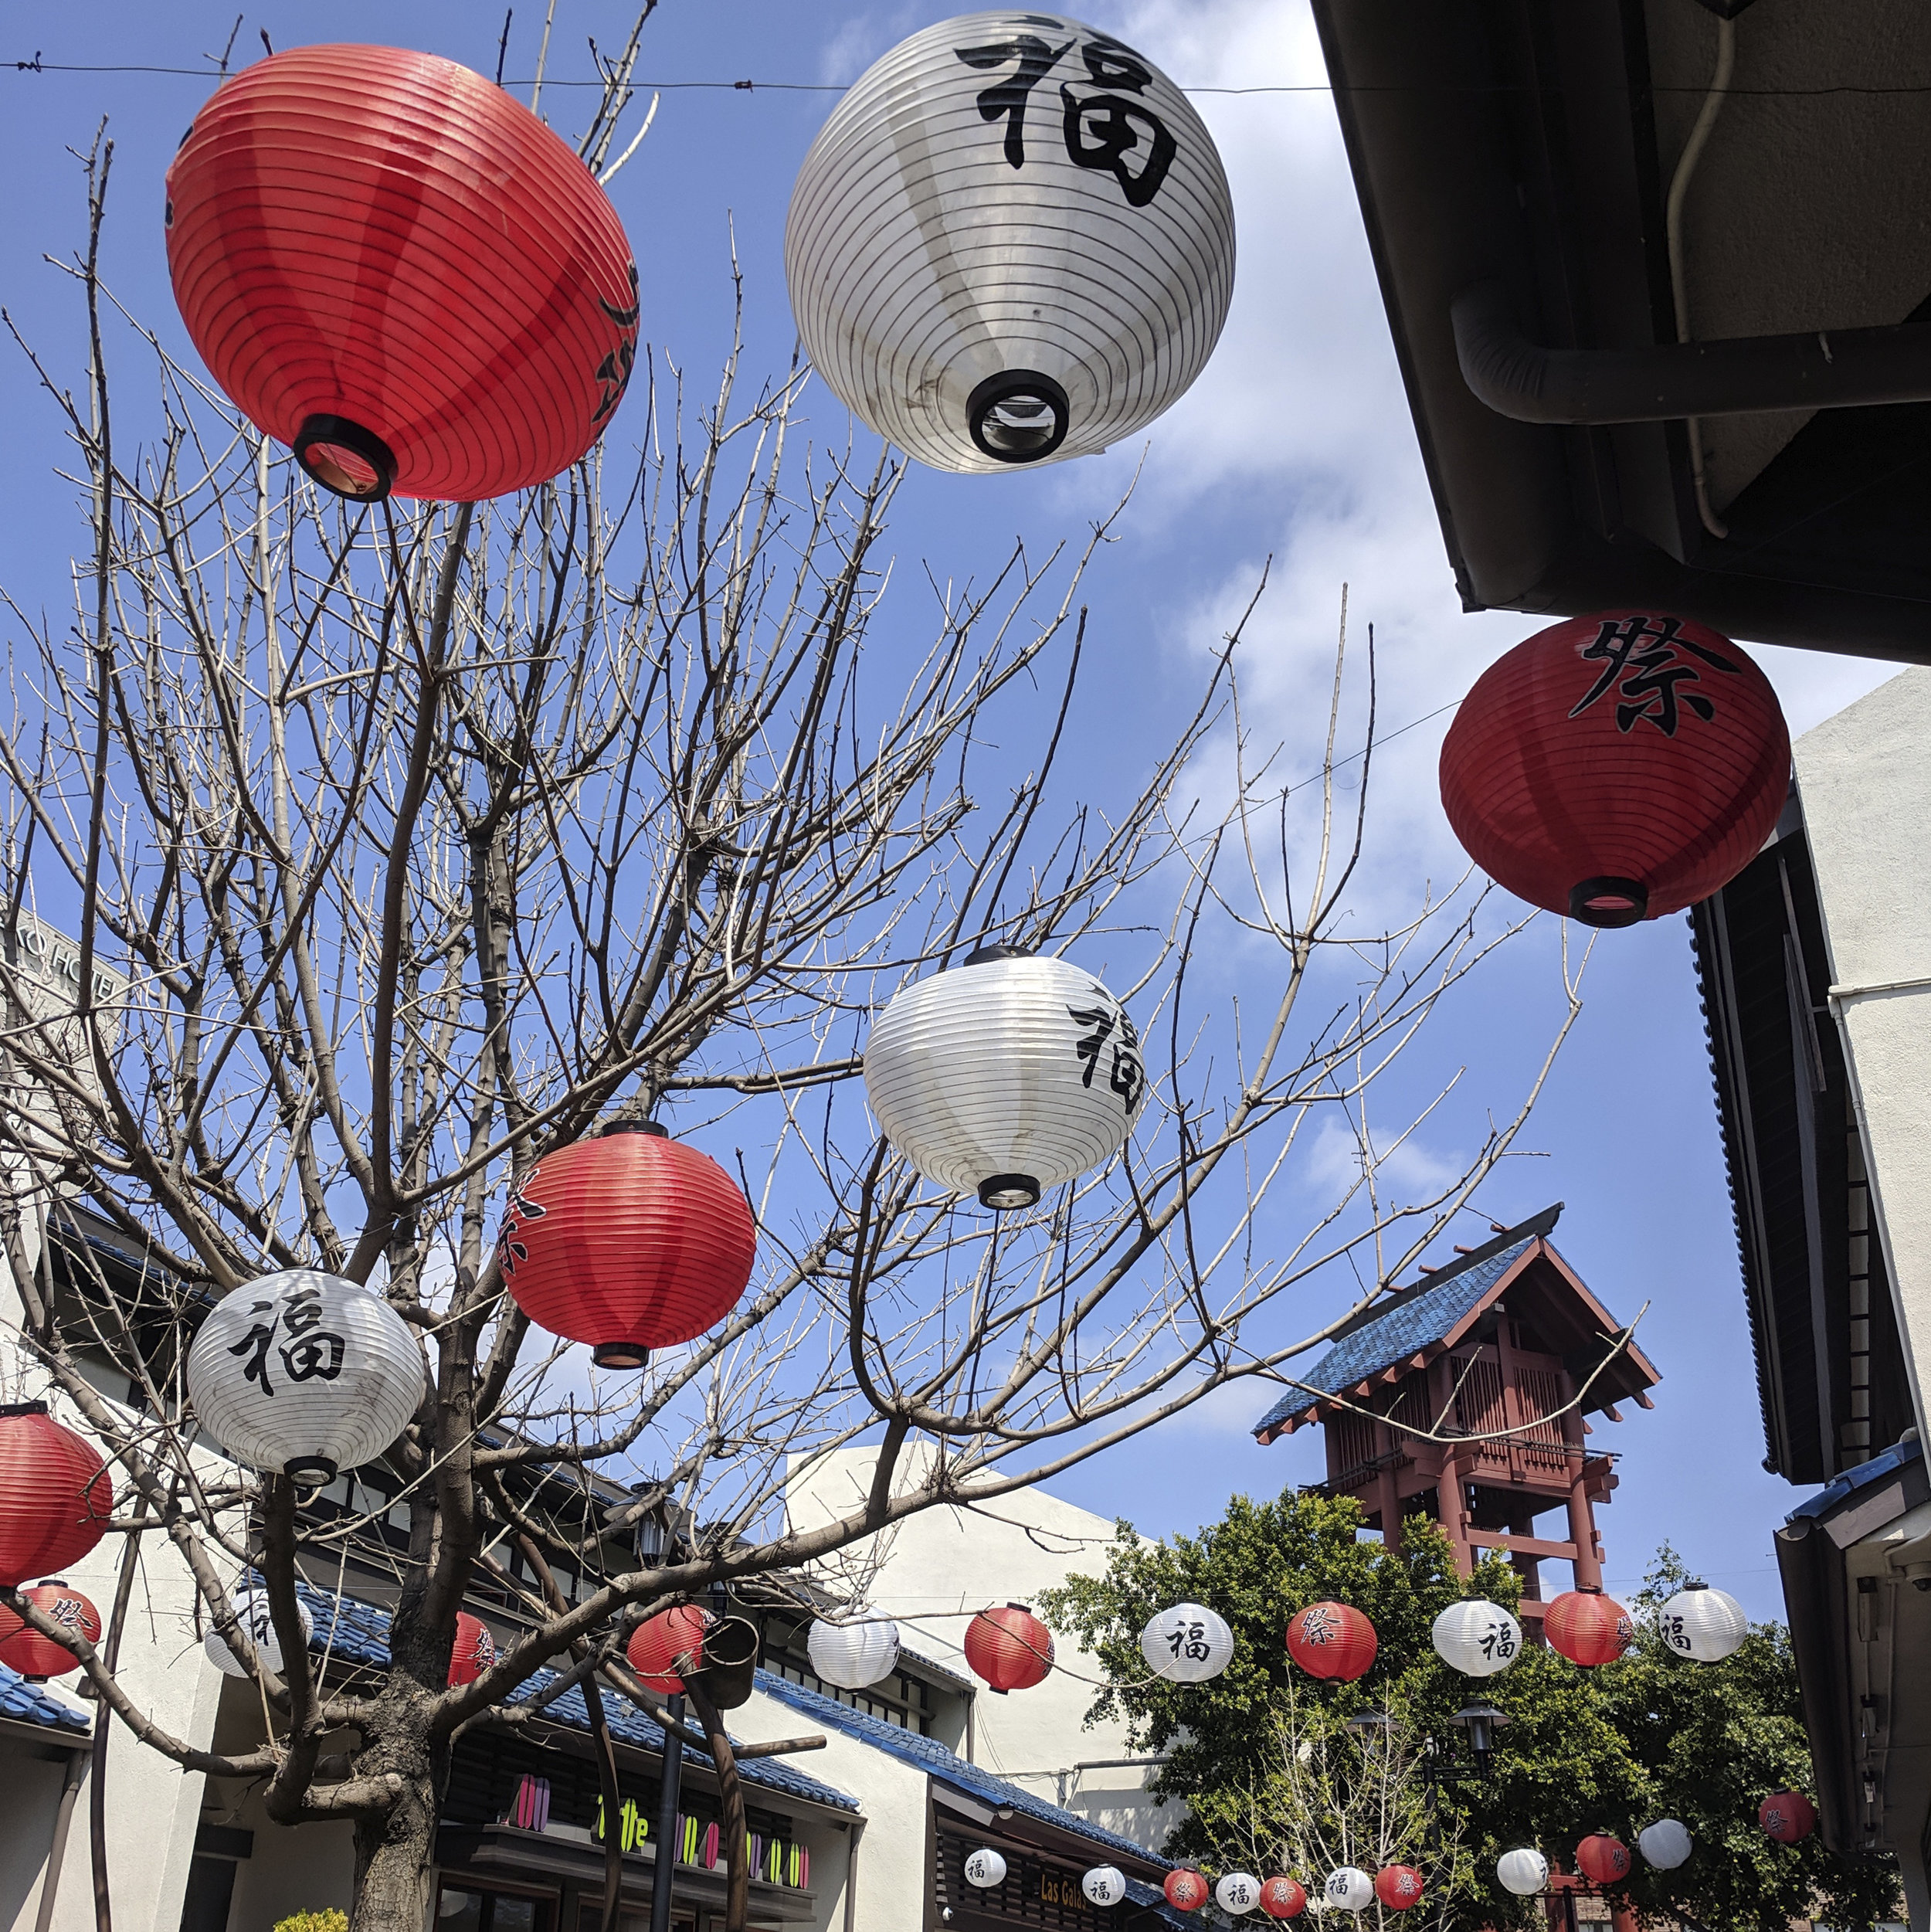 VRA 2019 was located in the Little Tokyo neighborhood in Los Angeles.